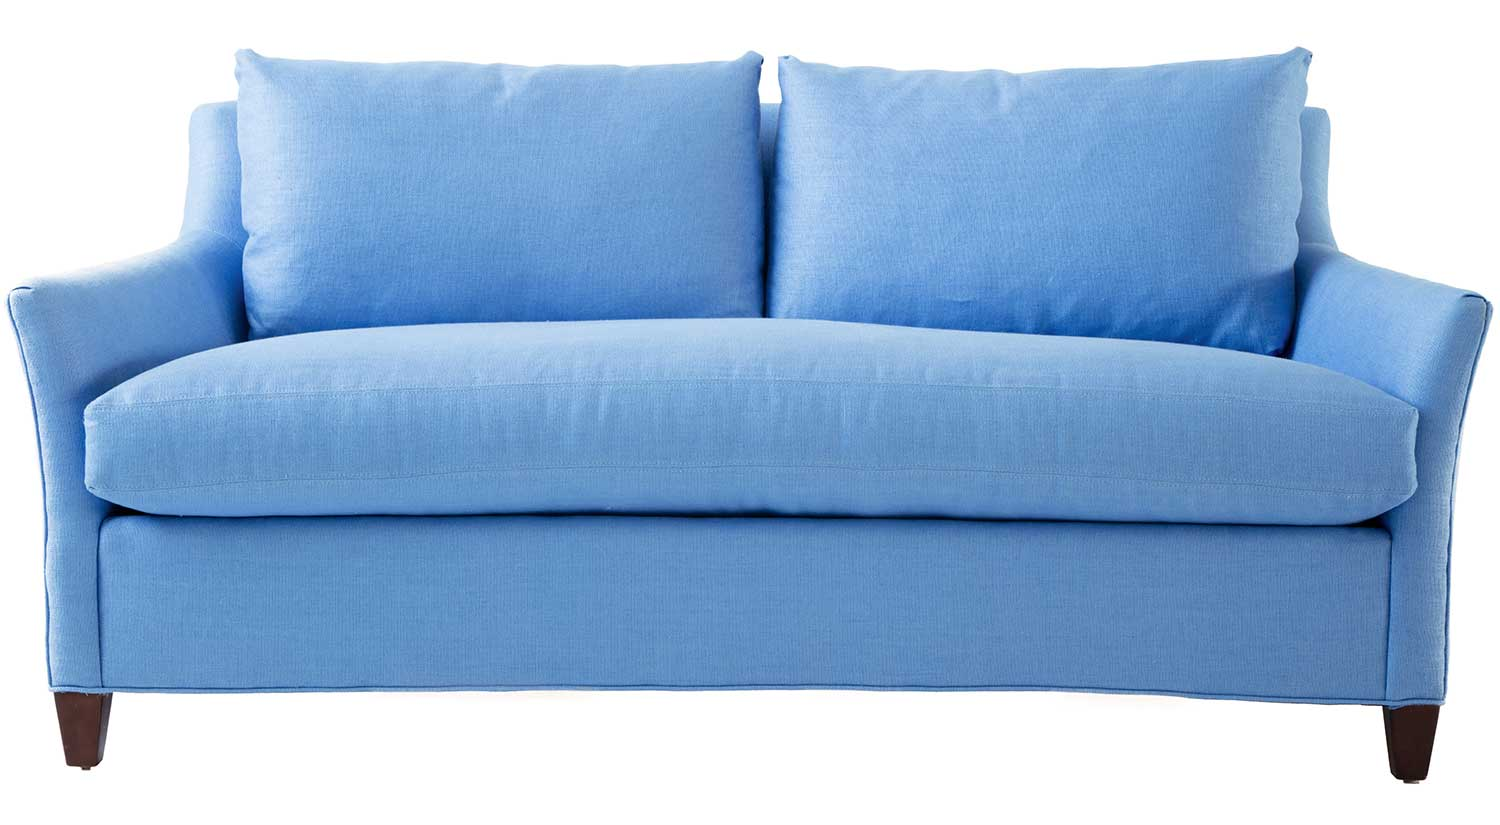 Circle Furniture Studio Settee Settees And Couches